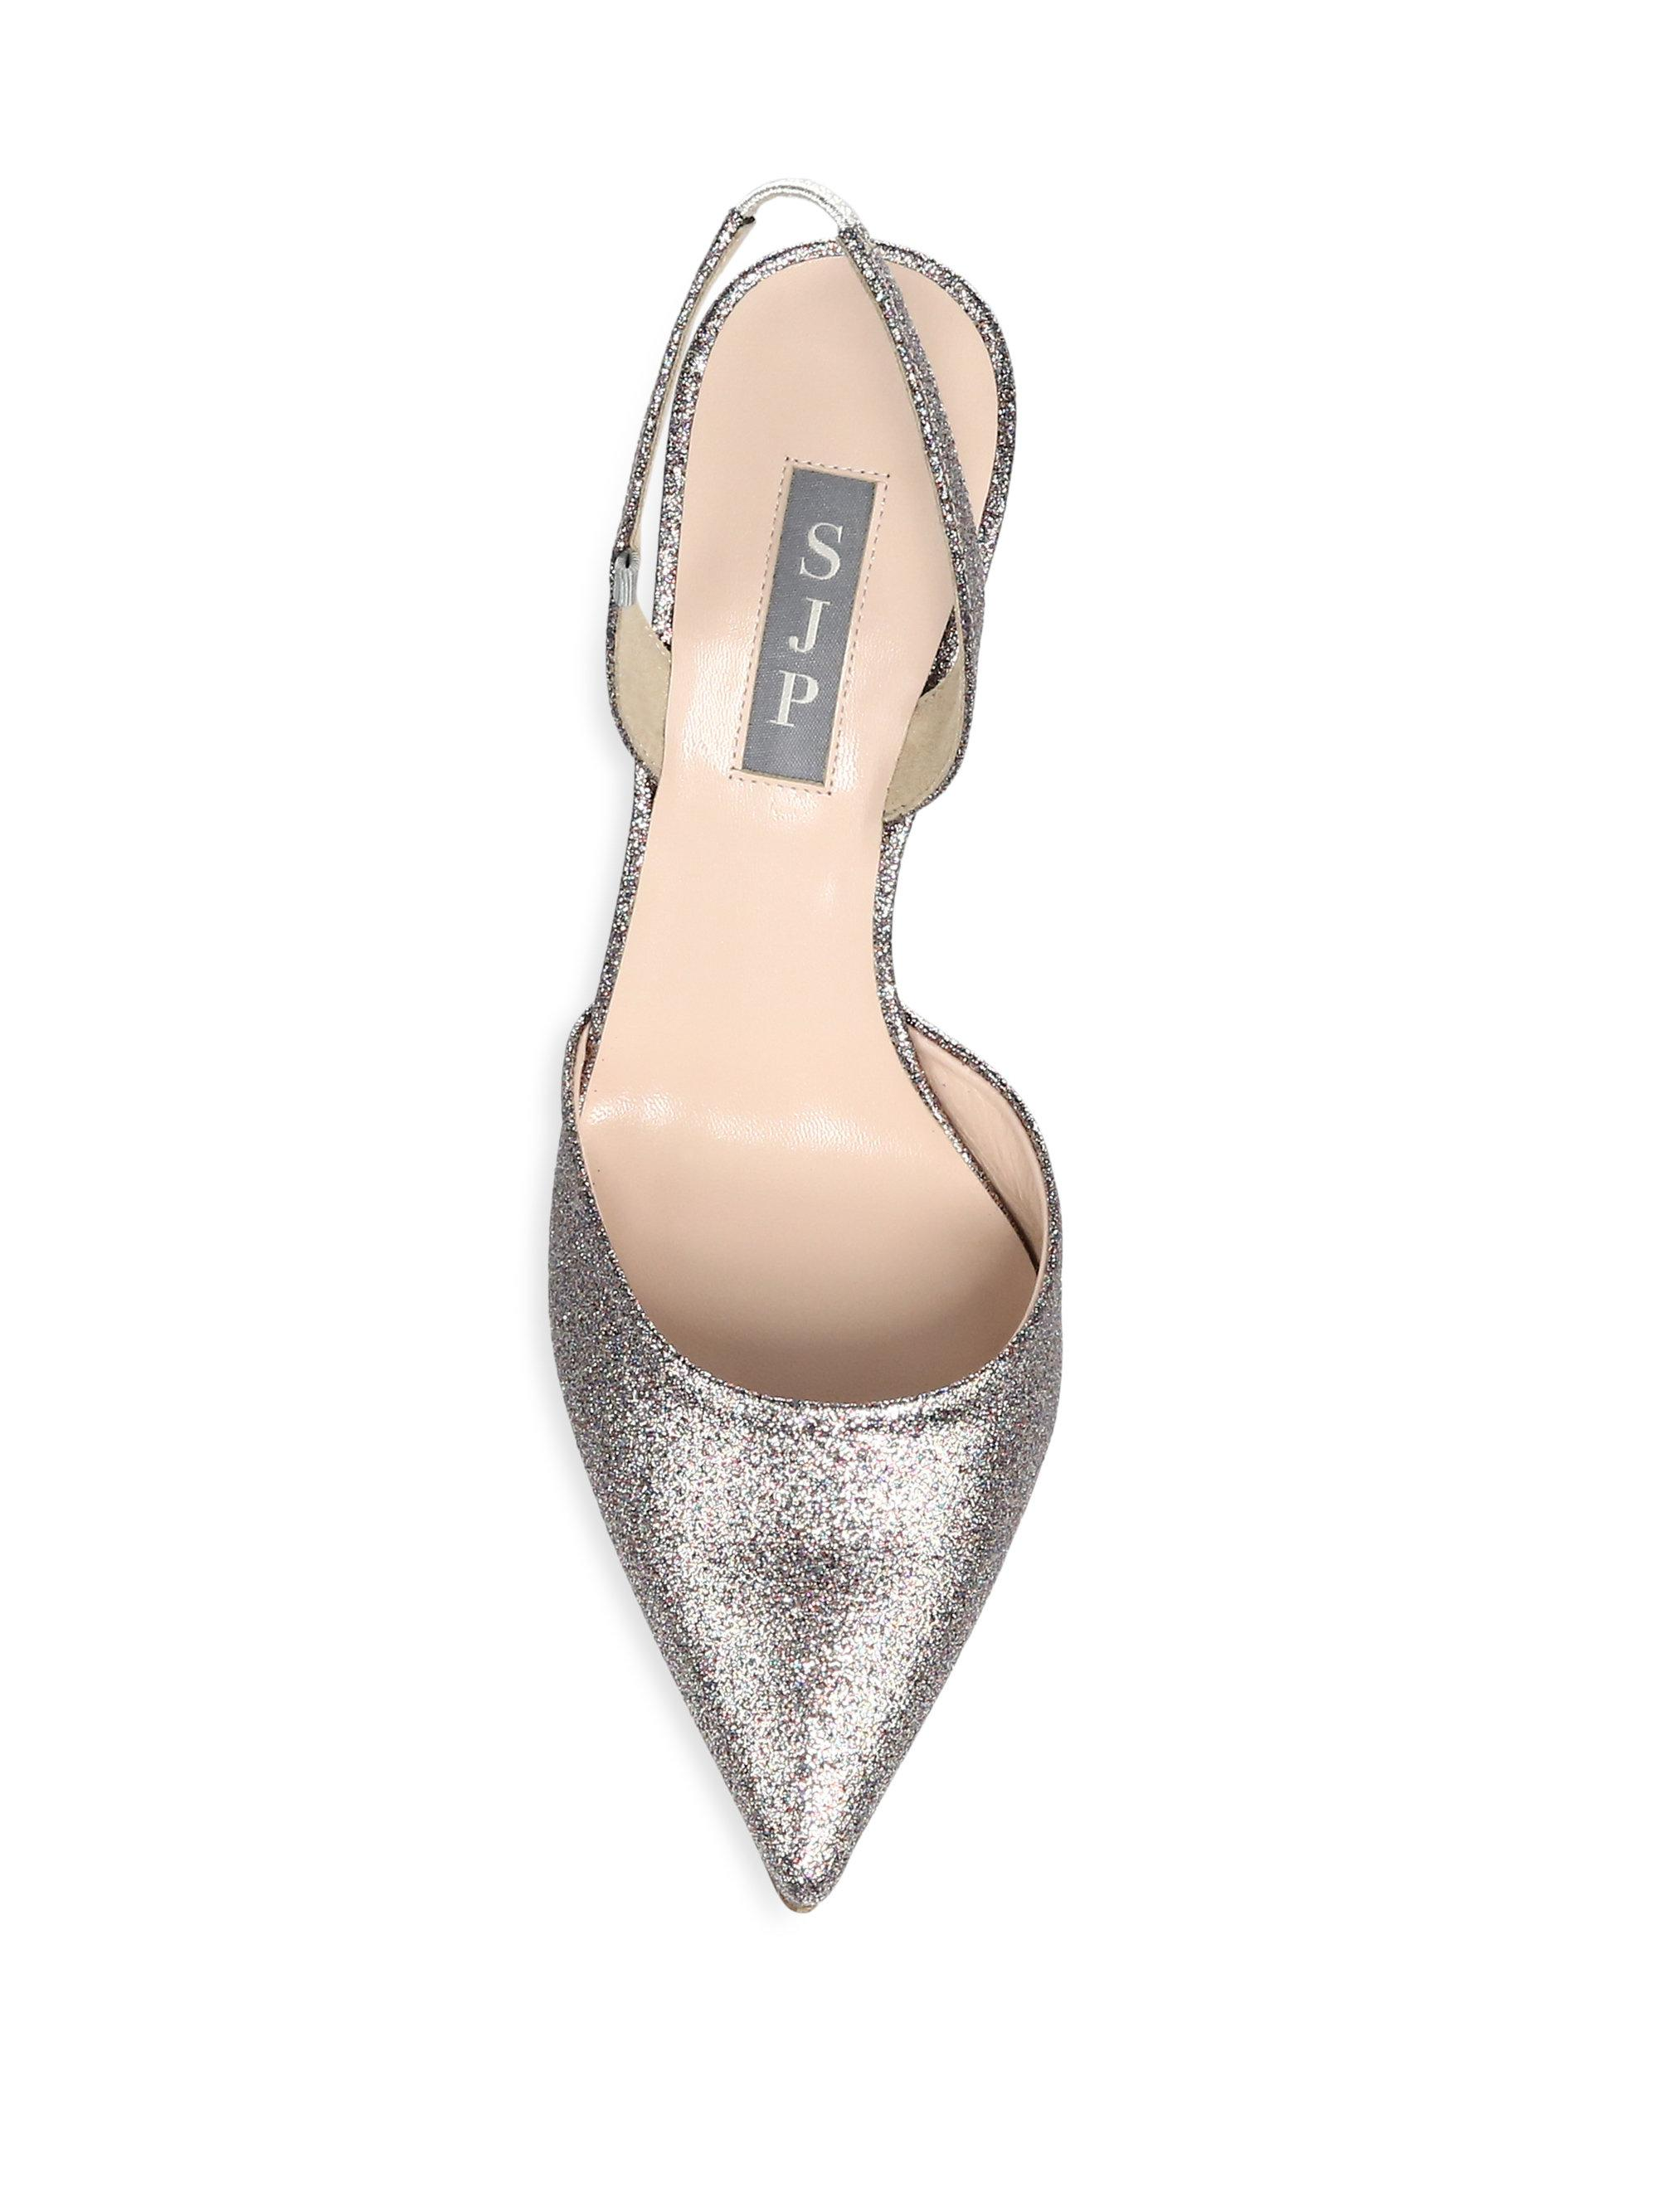 Sjp Bliss Glitter Slingback Pumps